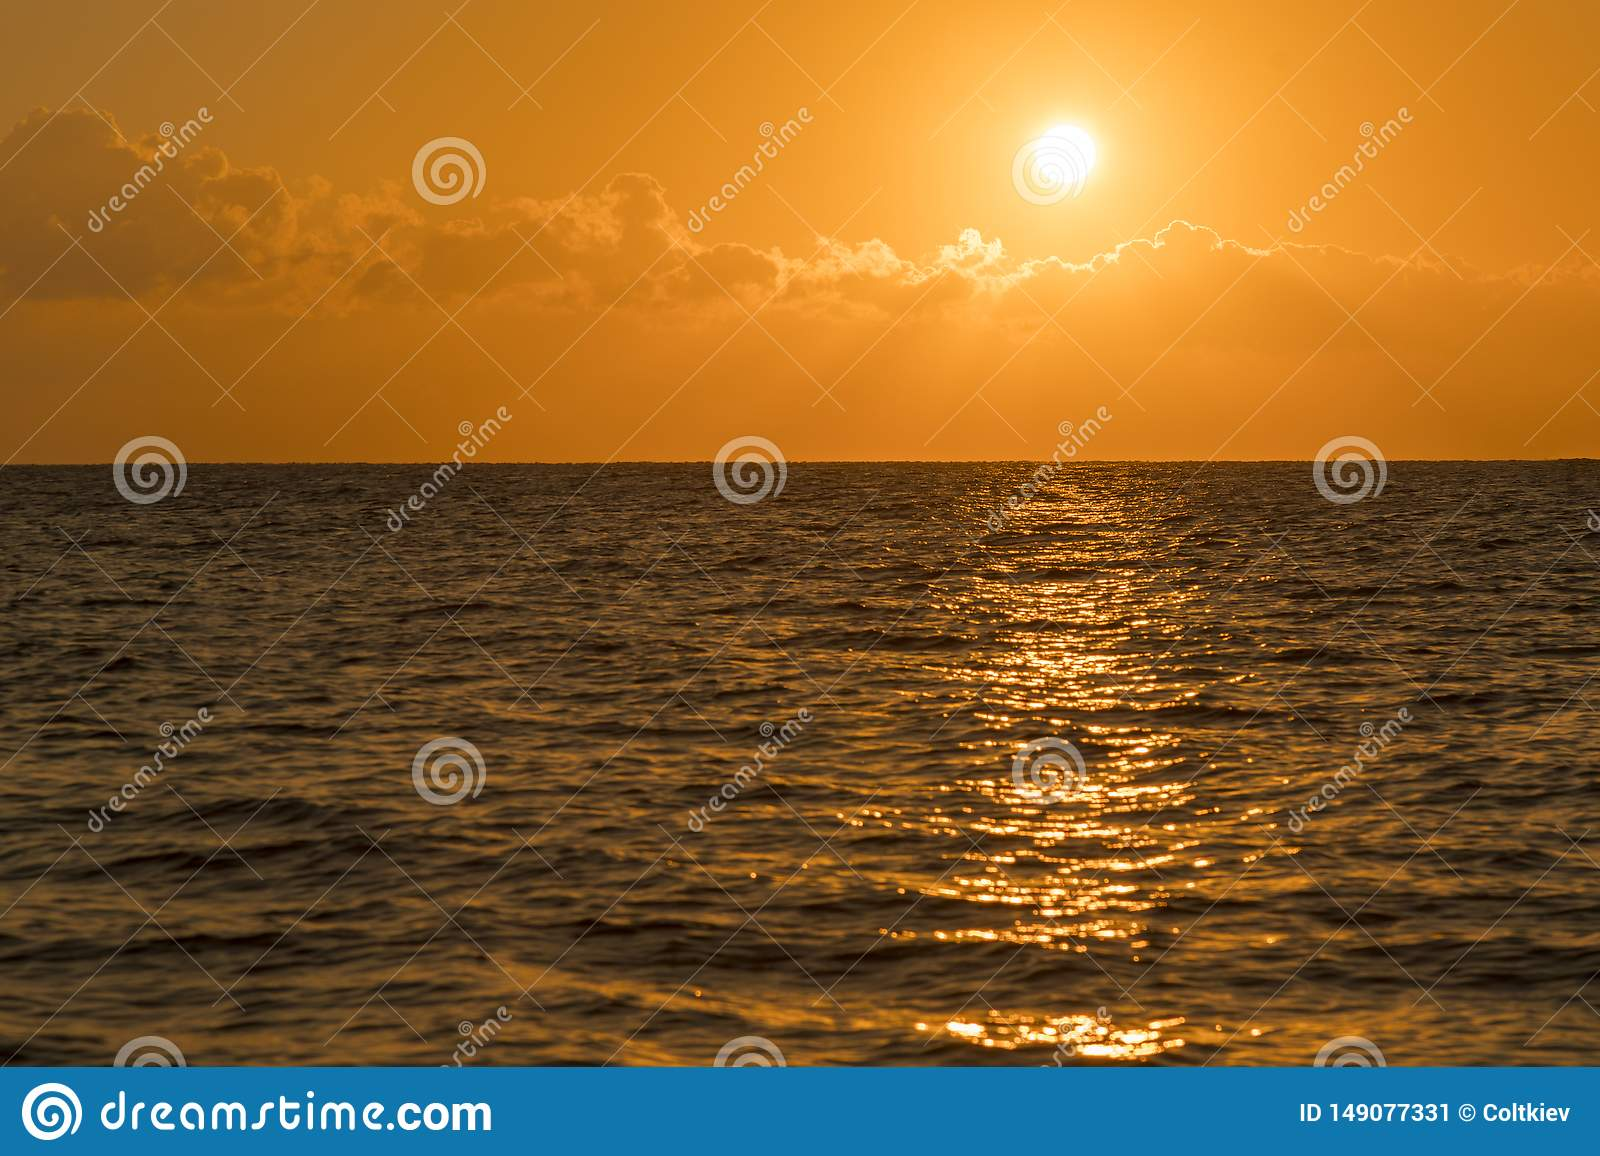 Colorful dawn over the sea, Sunset. Beautiful magic sunset over the sea. Beautiful sunset over the ocean. Sunset over